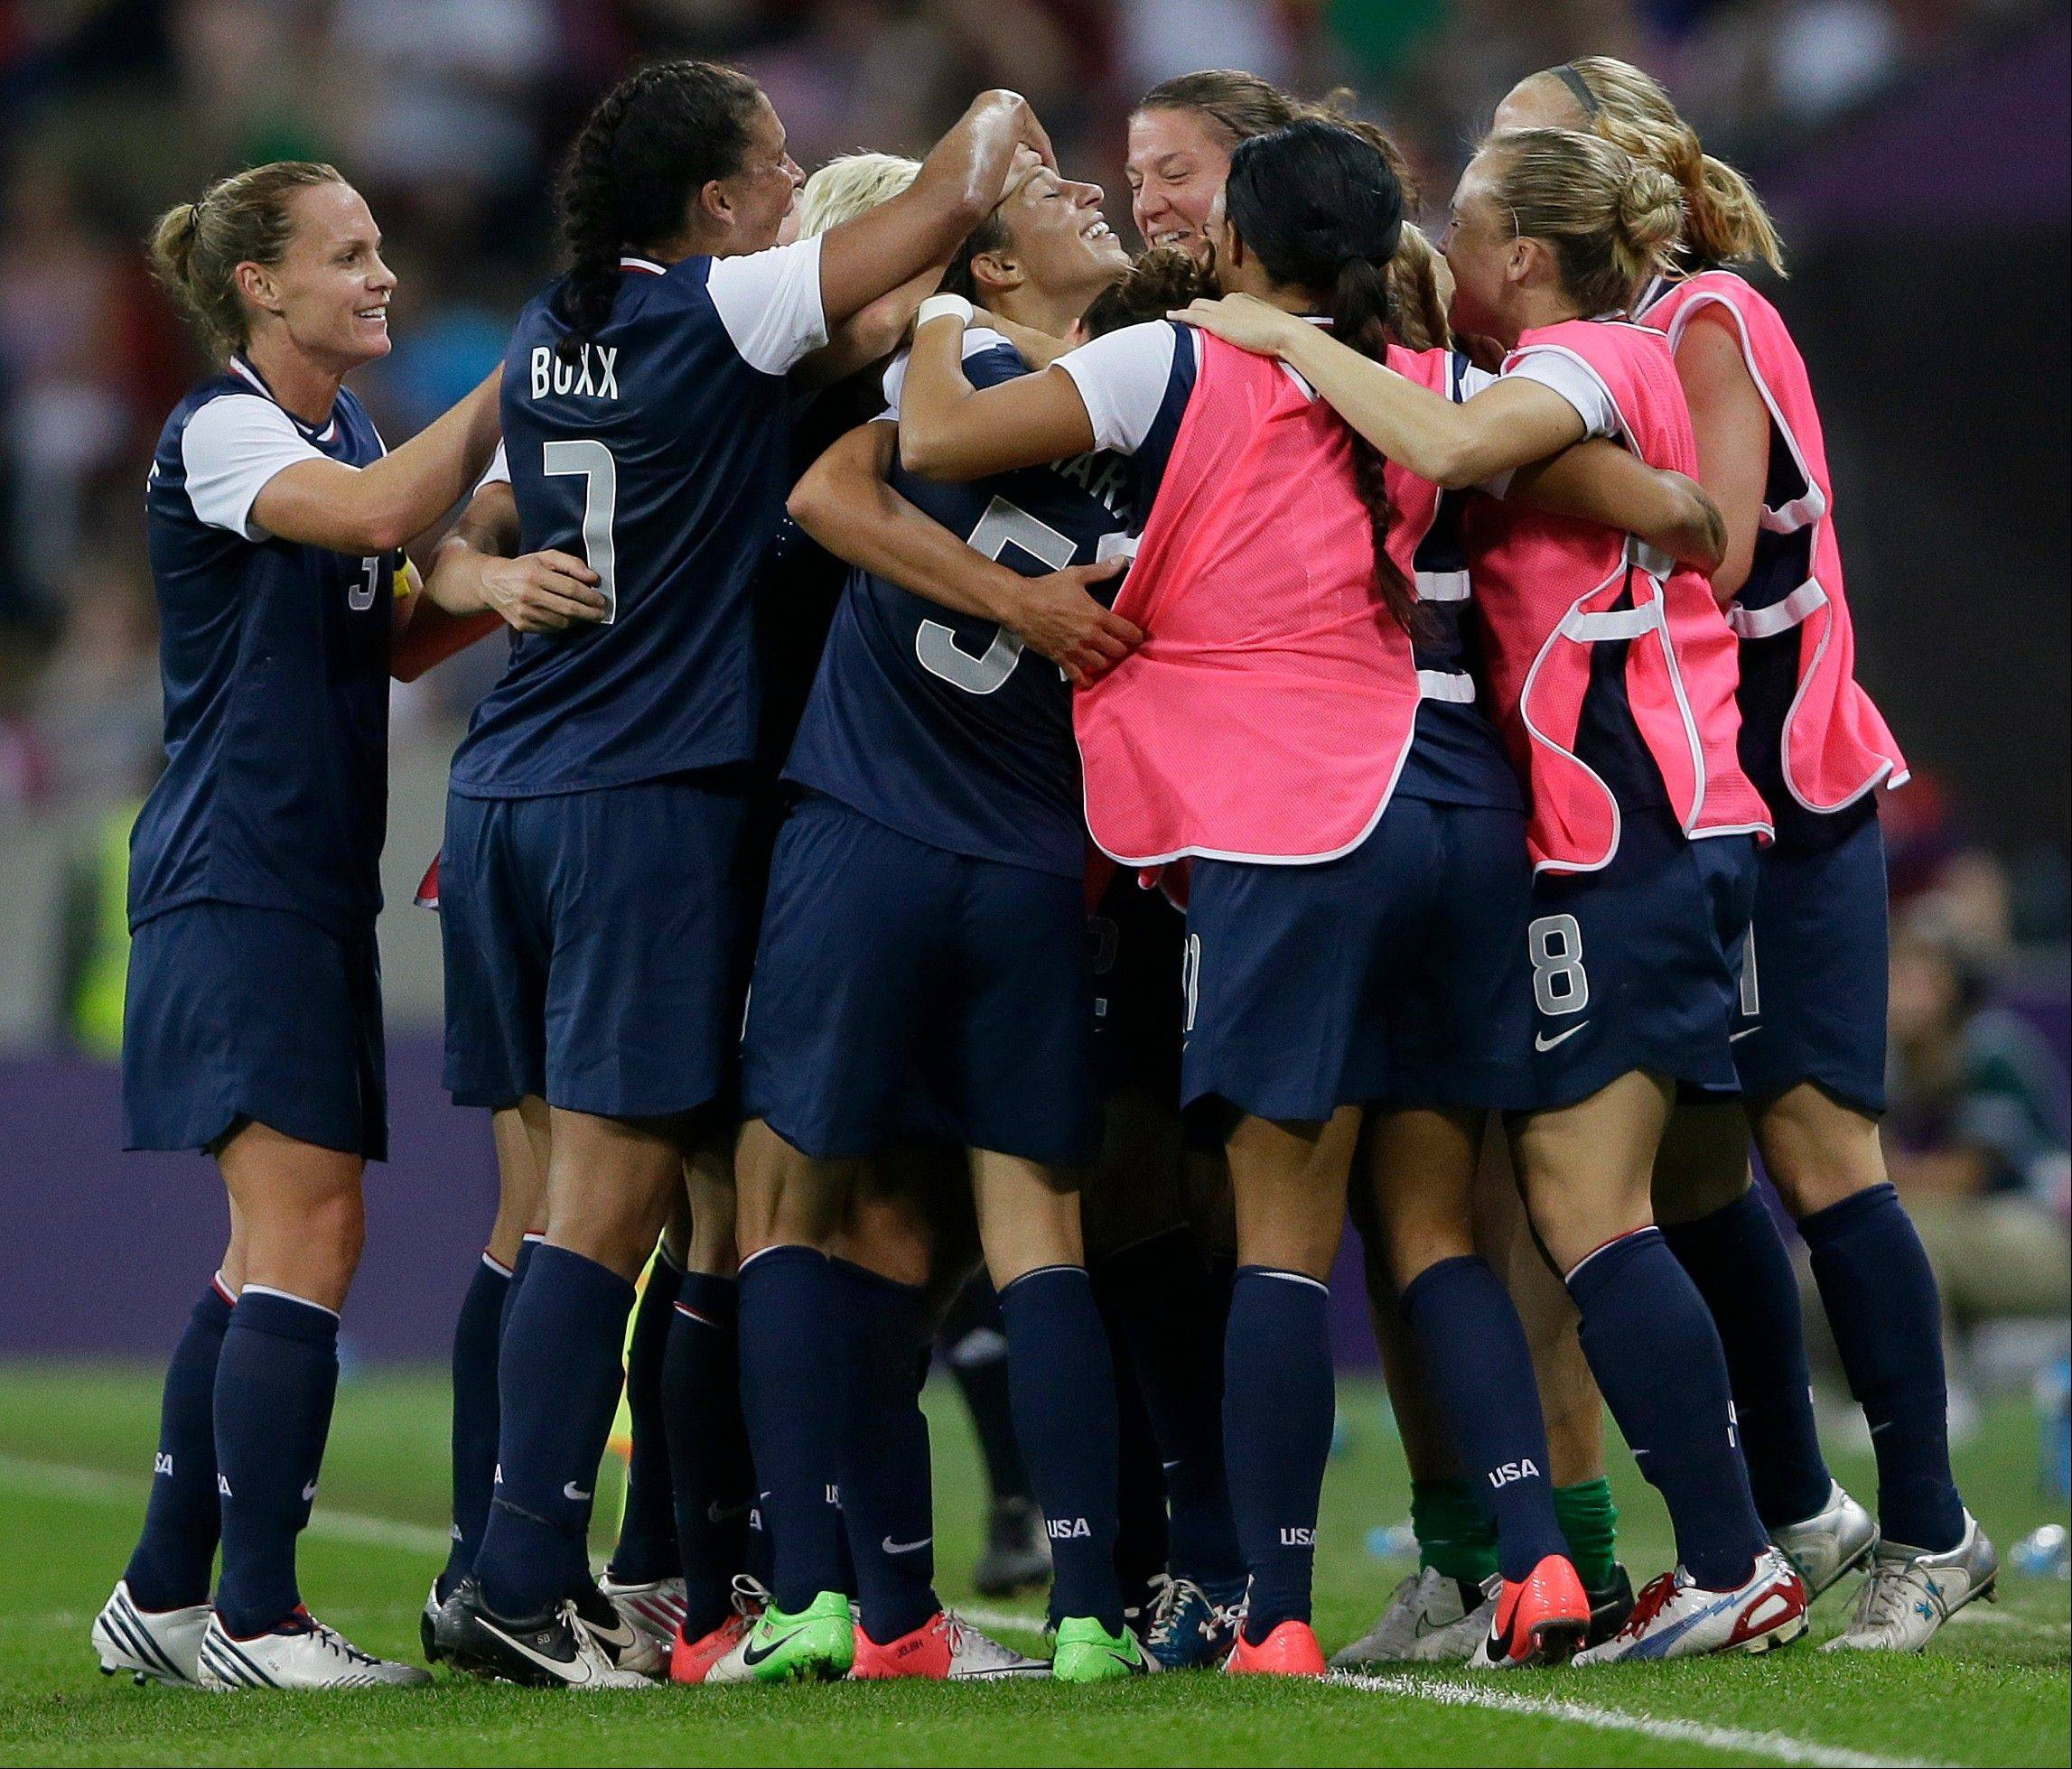 The United States' Carli Lloyd, center, celebrates Thursday with teammates after scoring her second goal during the gold medal match against Japan.